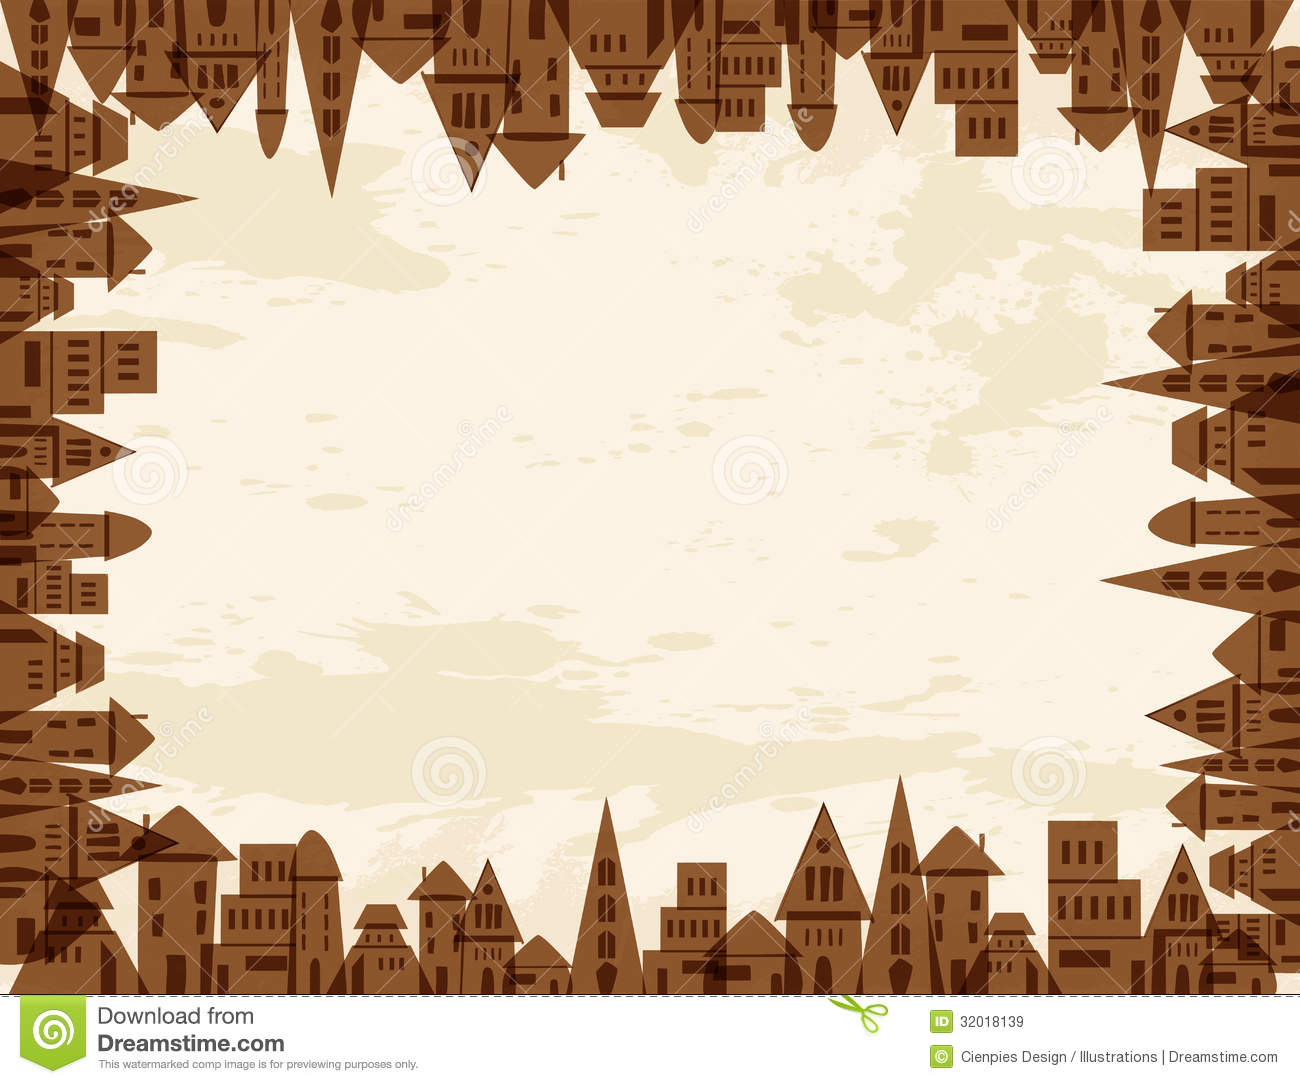 Tree city concept frame stock vector. Illustration of painting ...